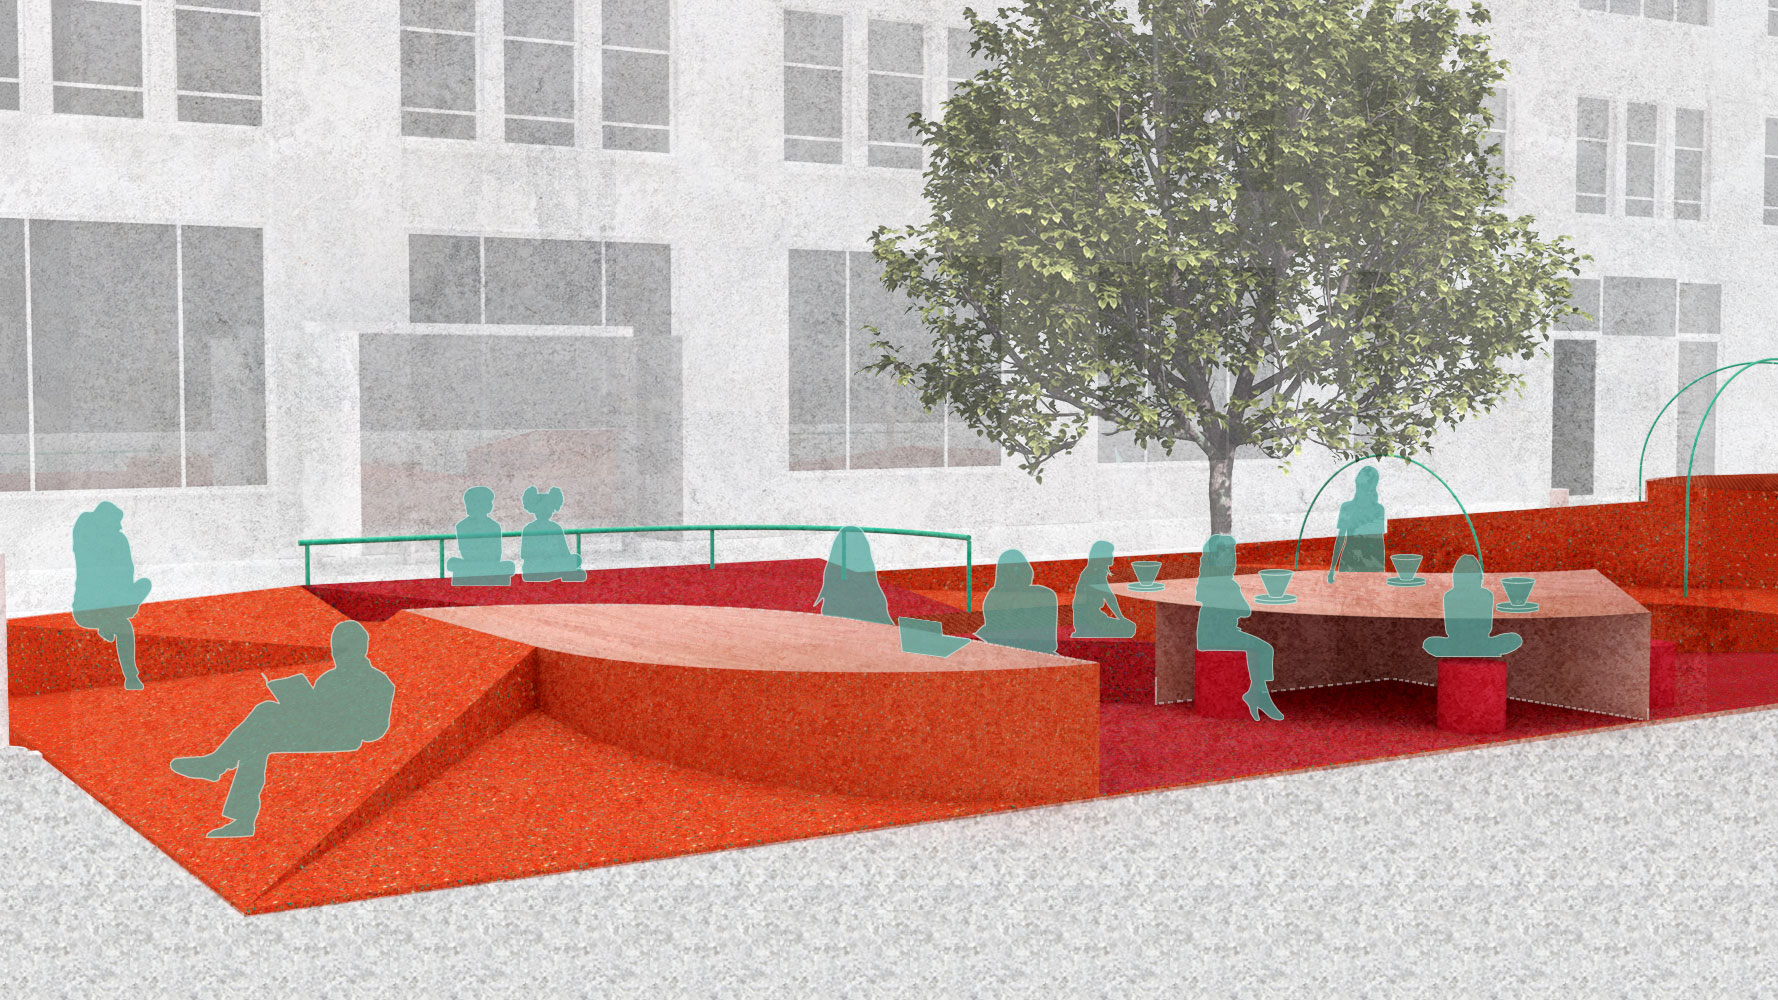 illustration of public space in manhattan